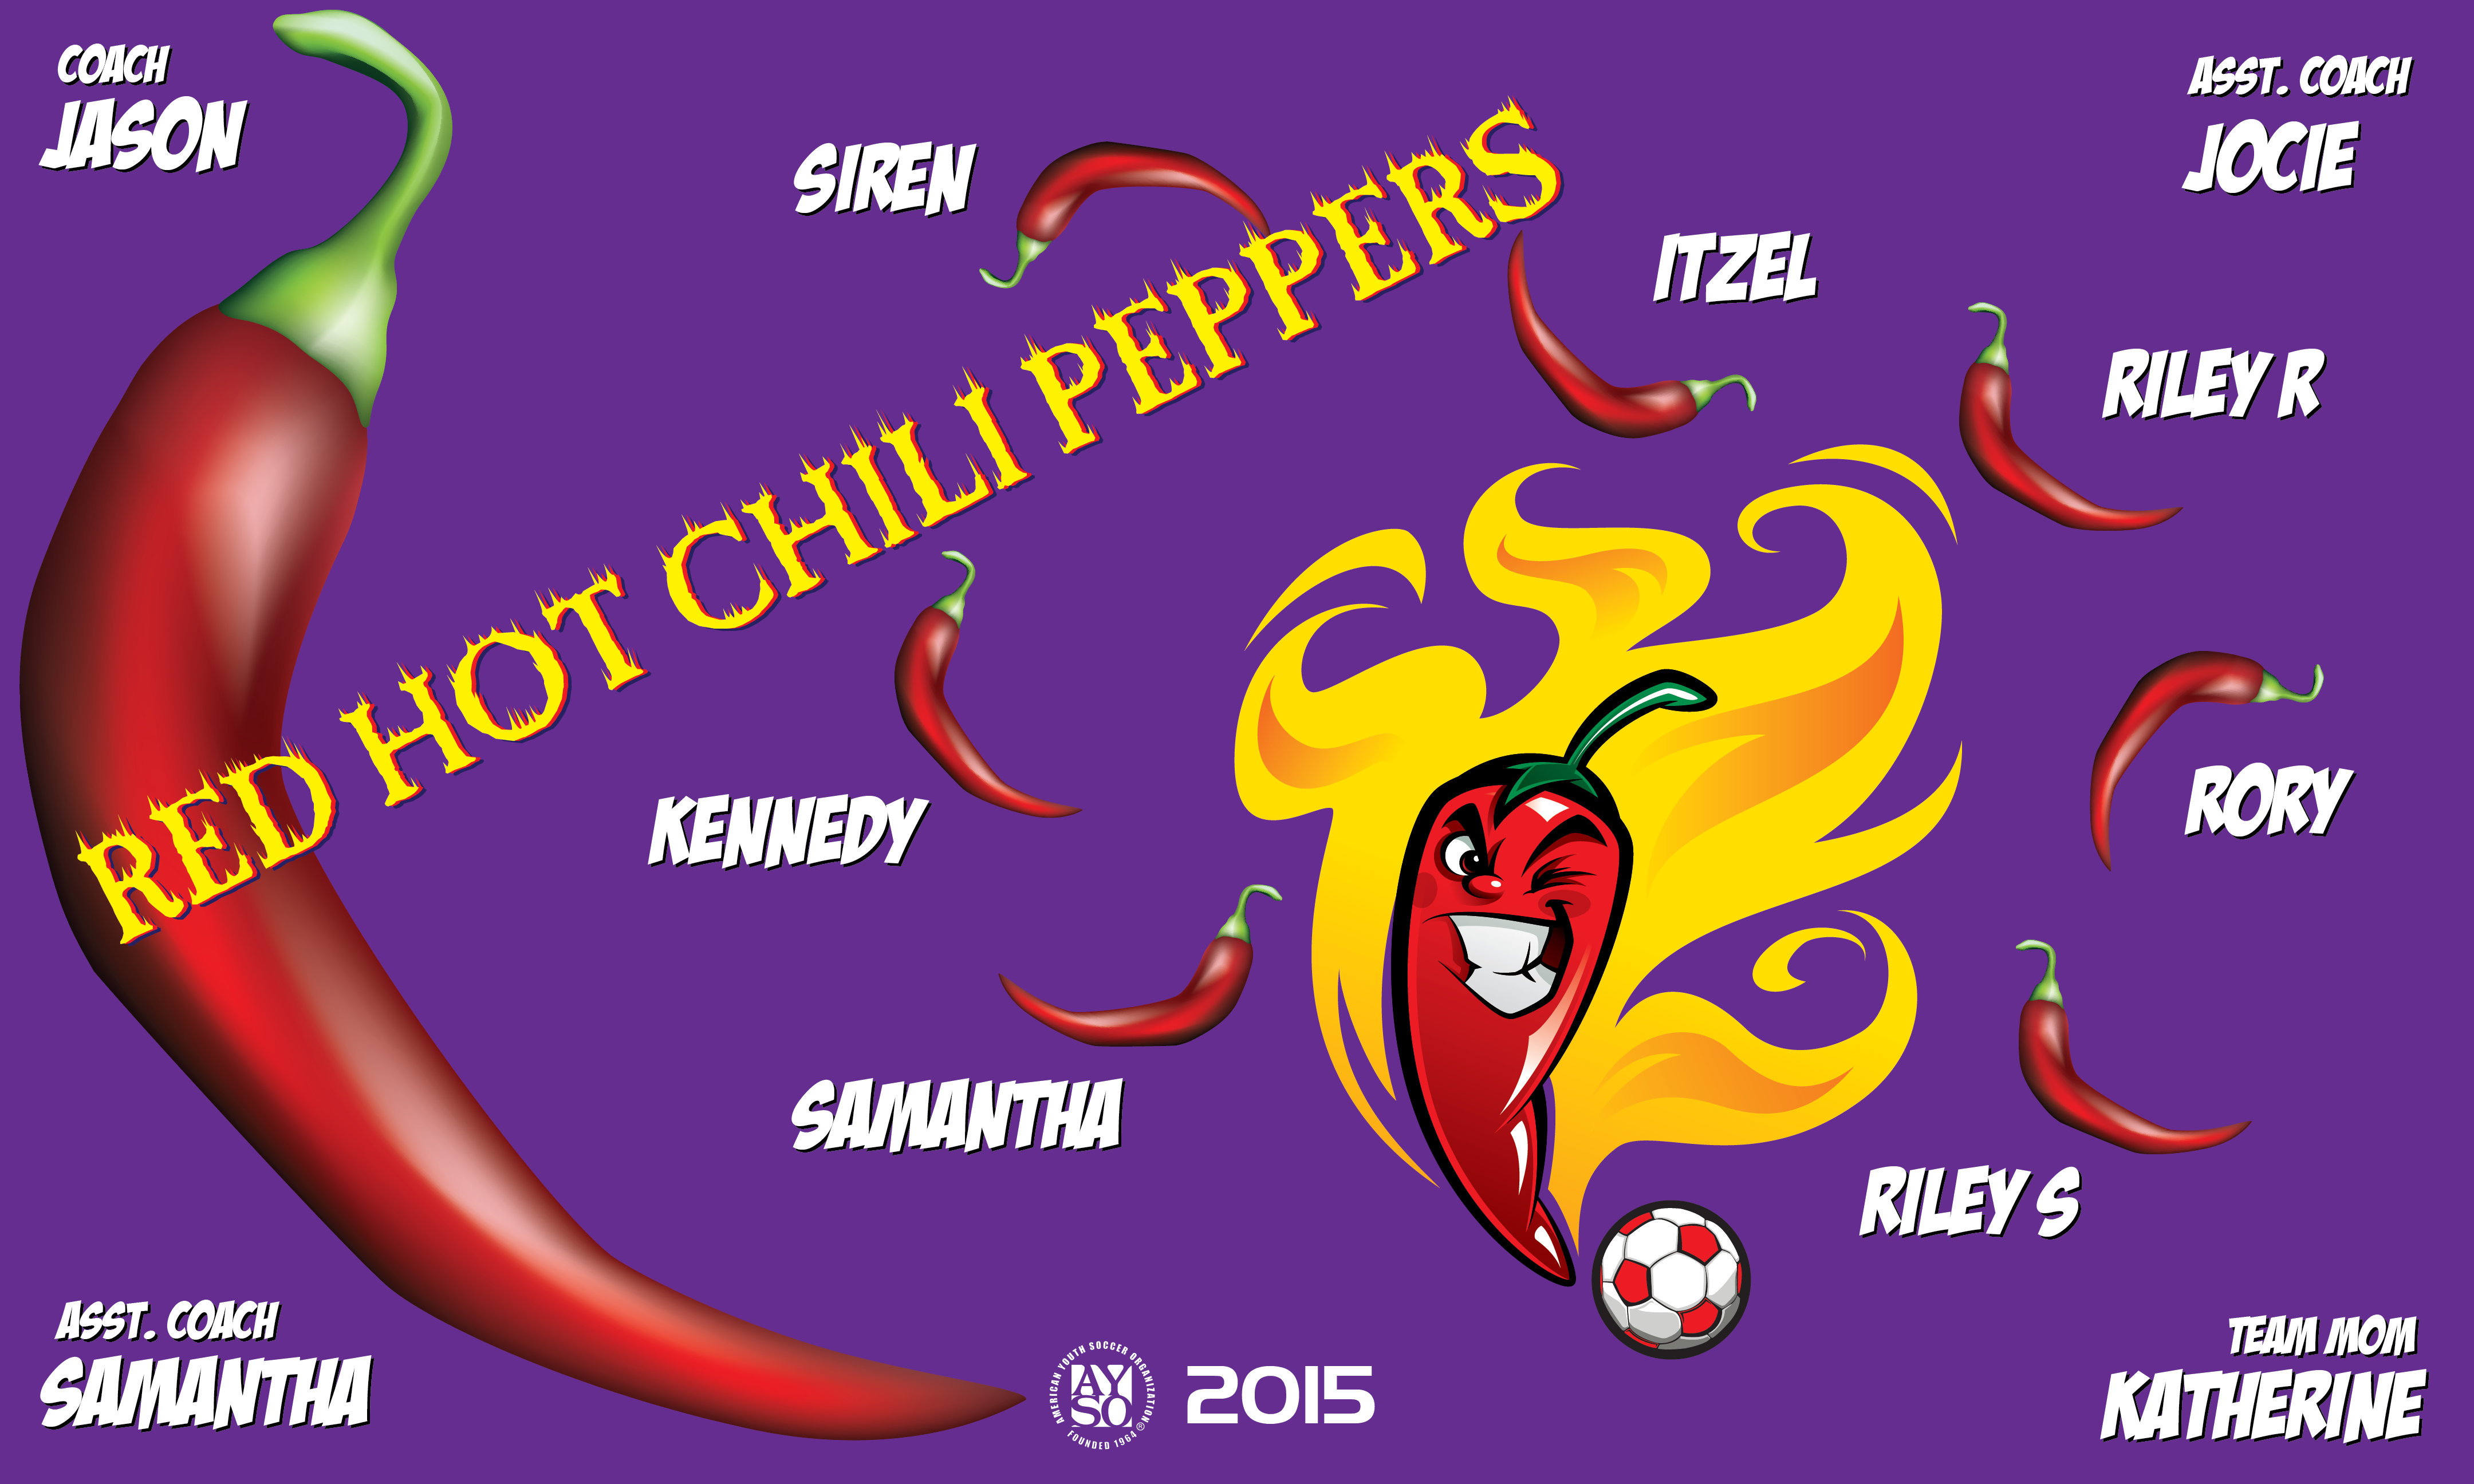 B1615 Red Hot Chili Peppers 3x5 Banner